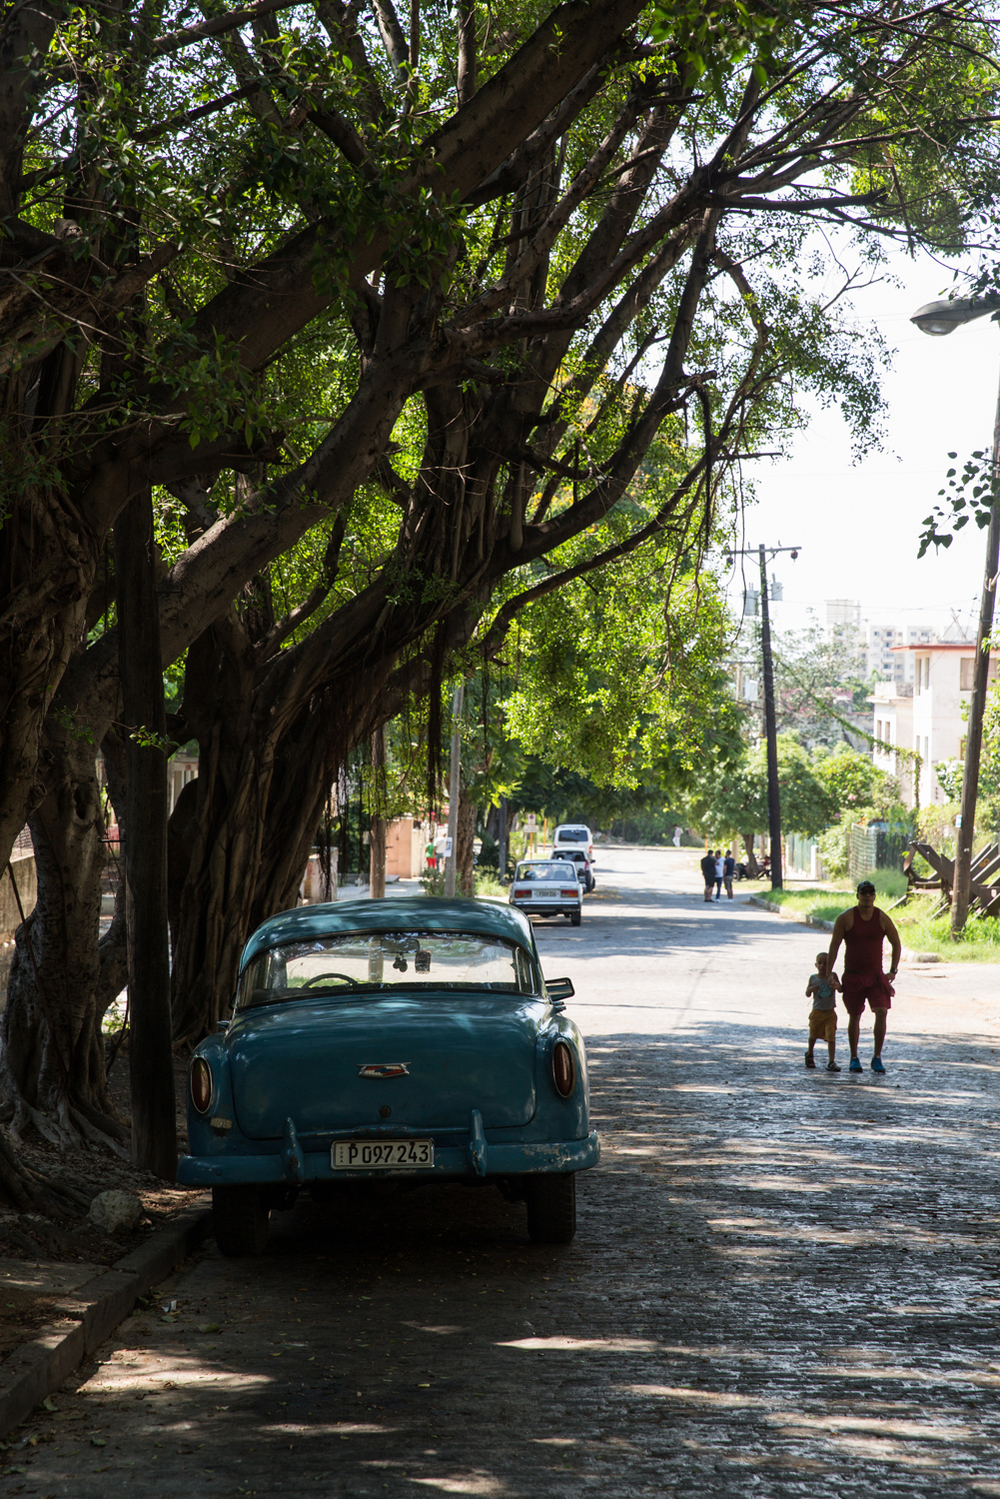 Father & Son. Havana, Cuba, August 2015.